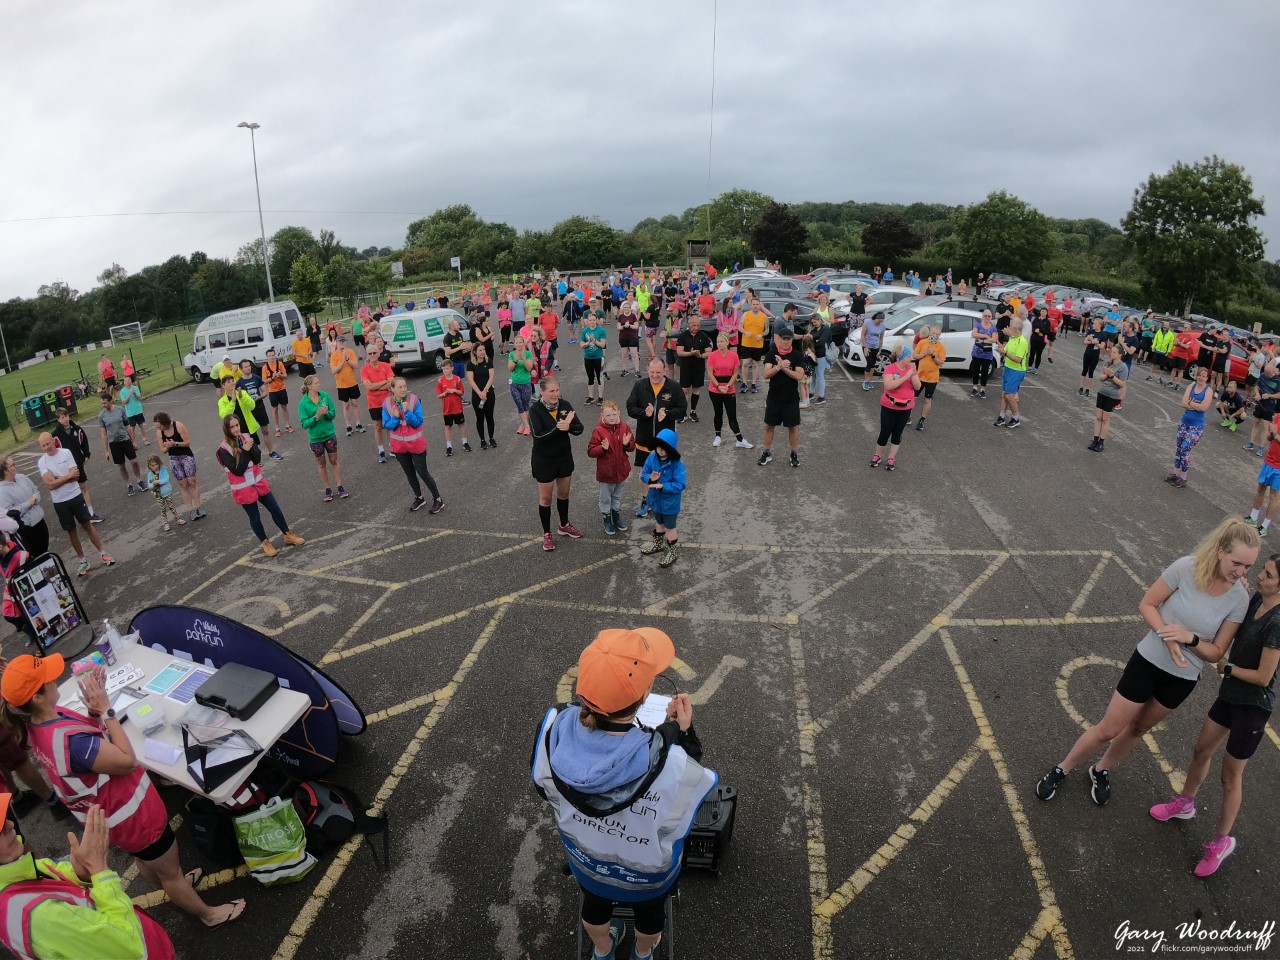 The parkrun briefing